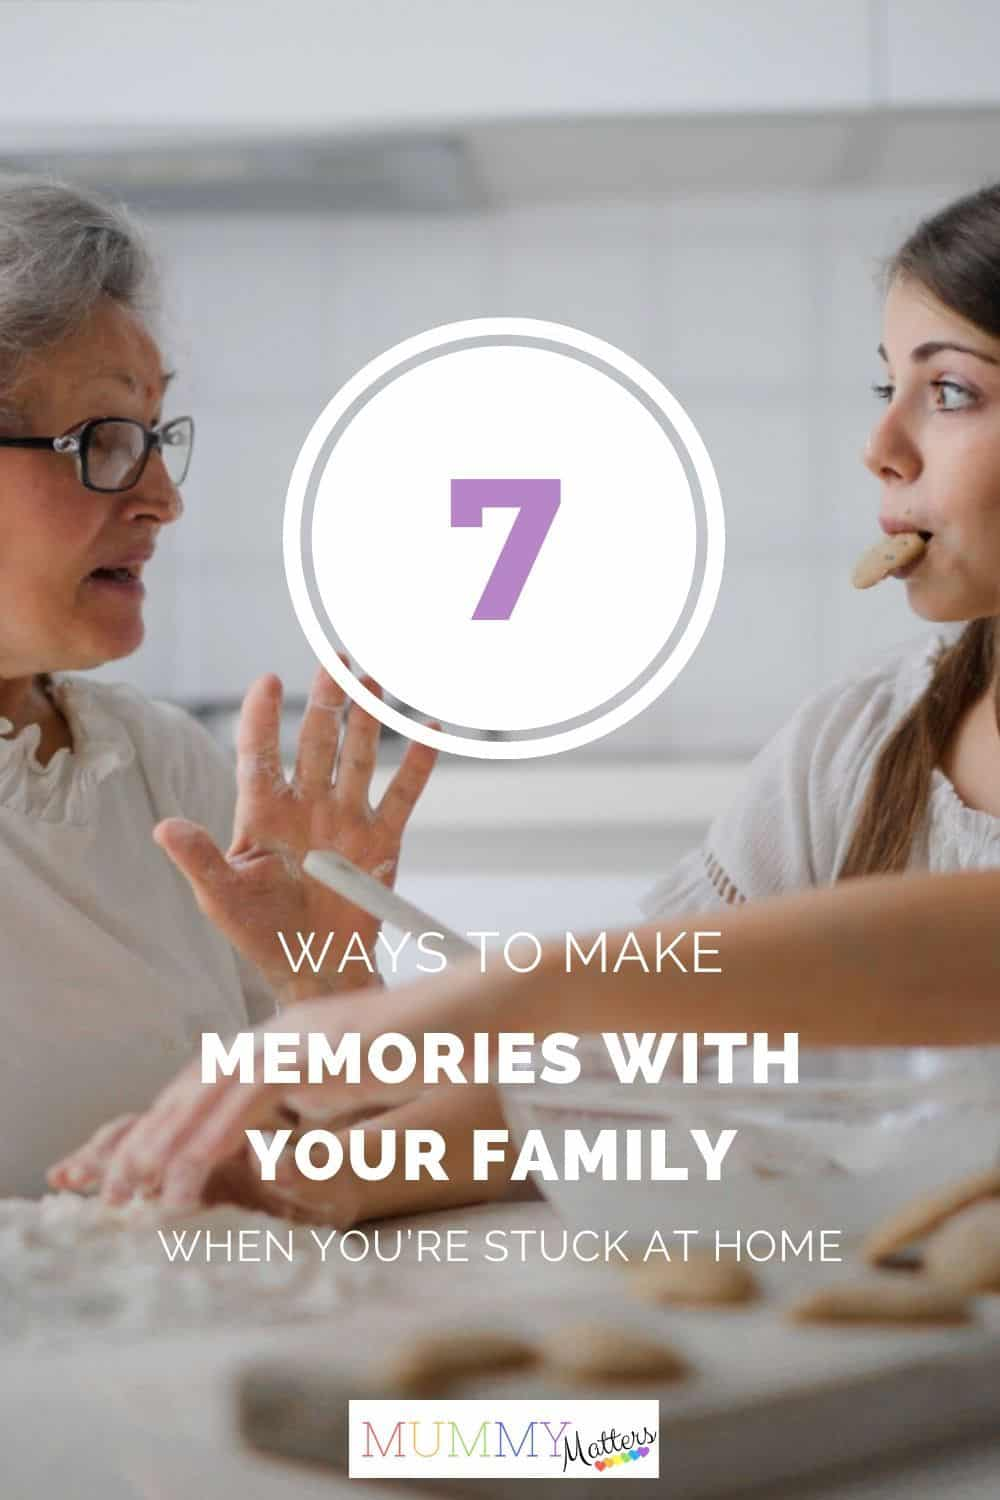 If you happen to be stuck at home with your family, don't argue and fright. Here are 7 ways you can make memories with your family without leaving your house.